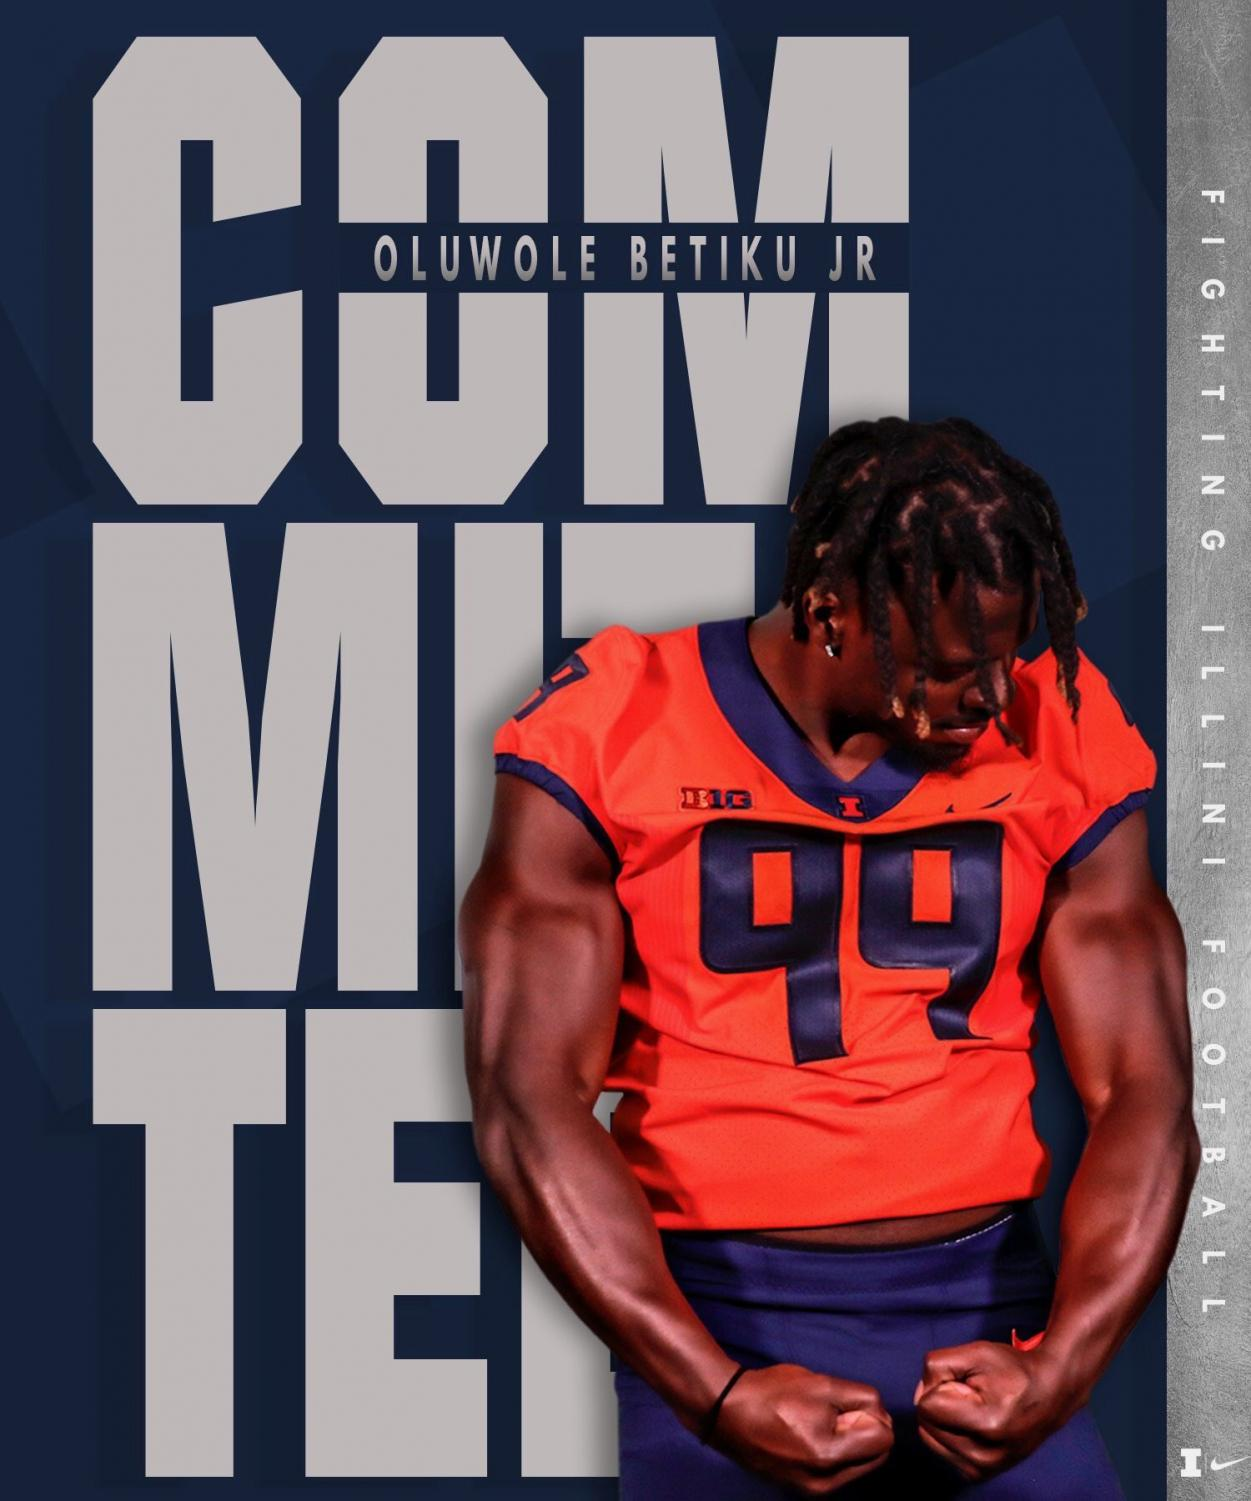 Oluwole Betiku's commitment photo posted on his twitter on Thursday.